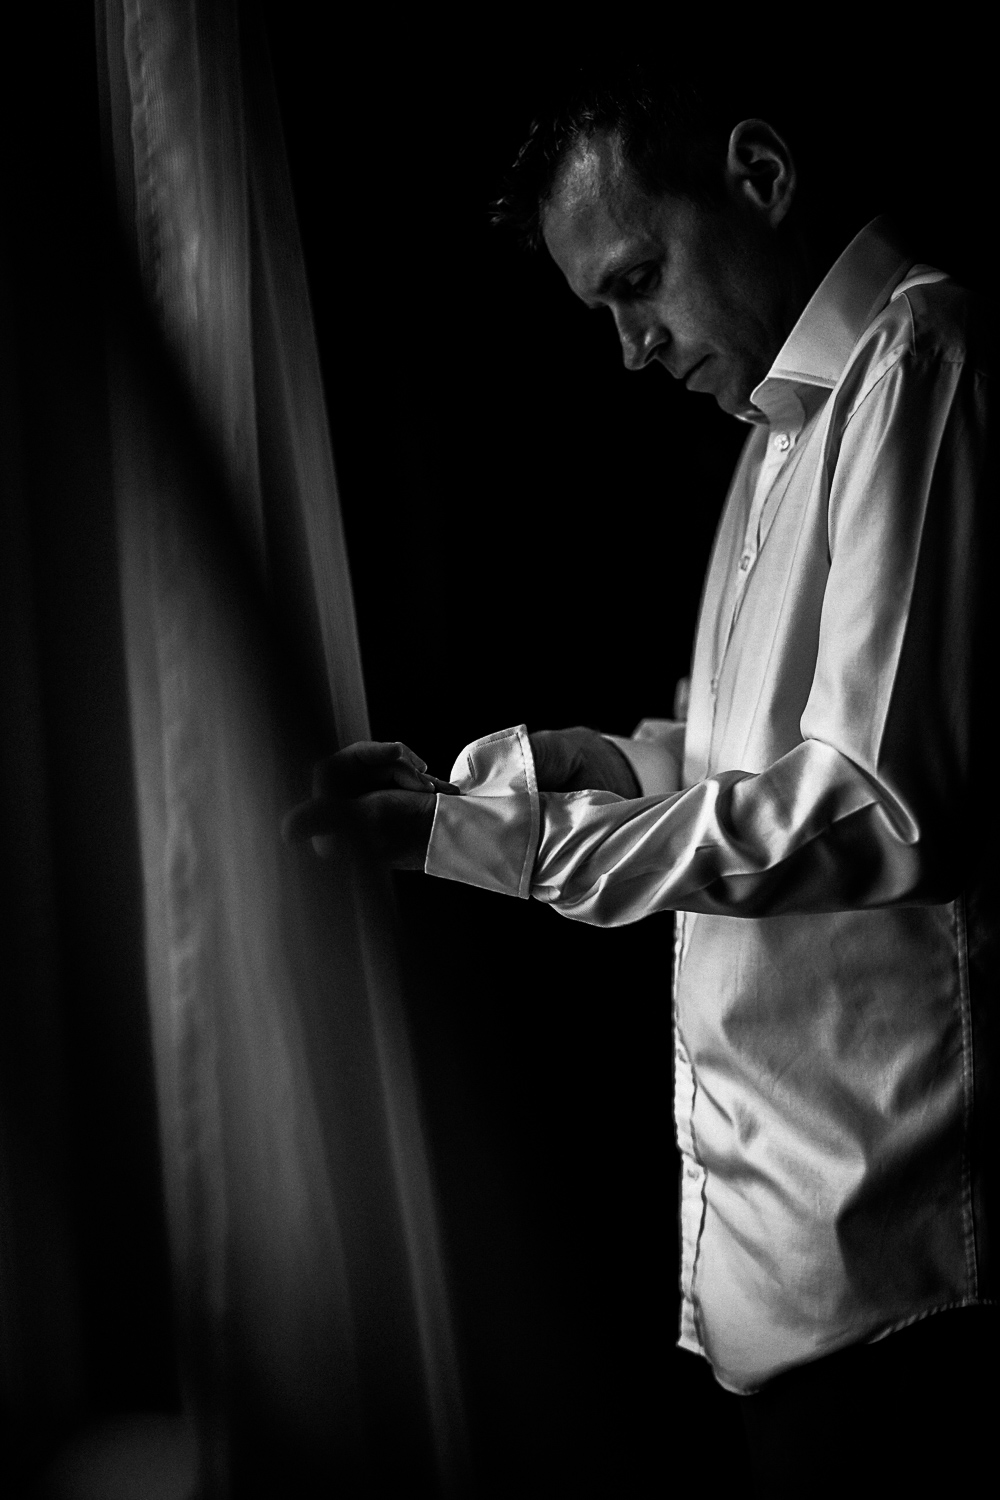 Groom getting ready at Swynford Manor Wedding